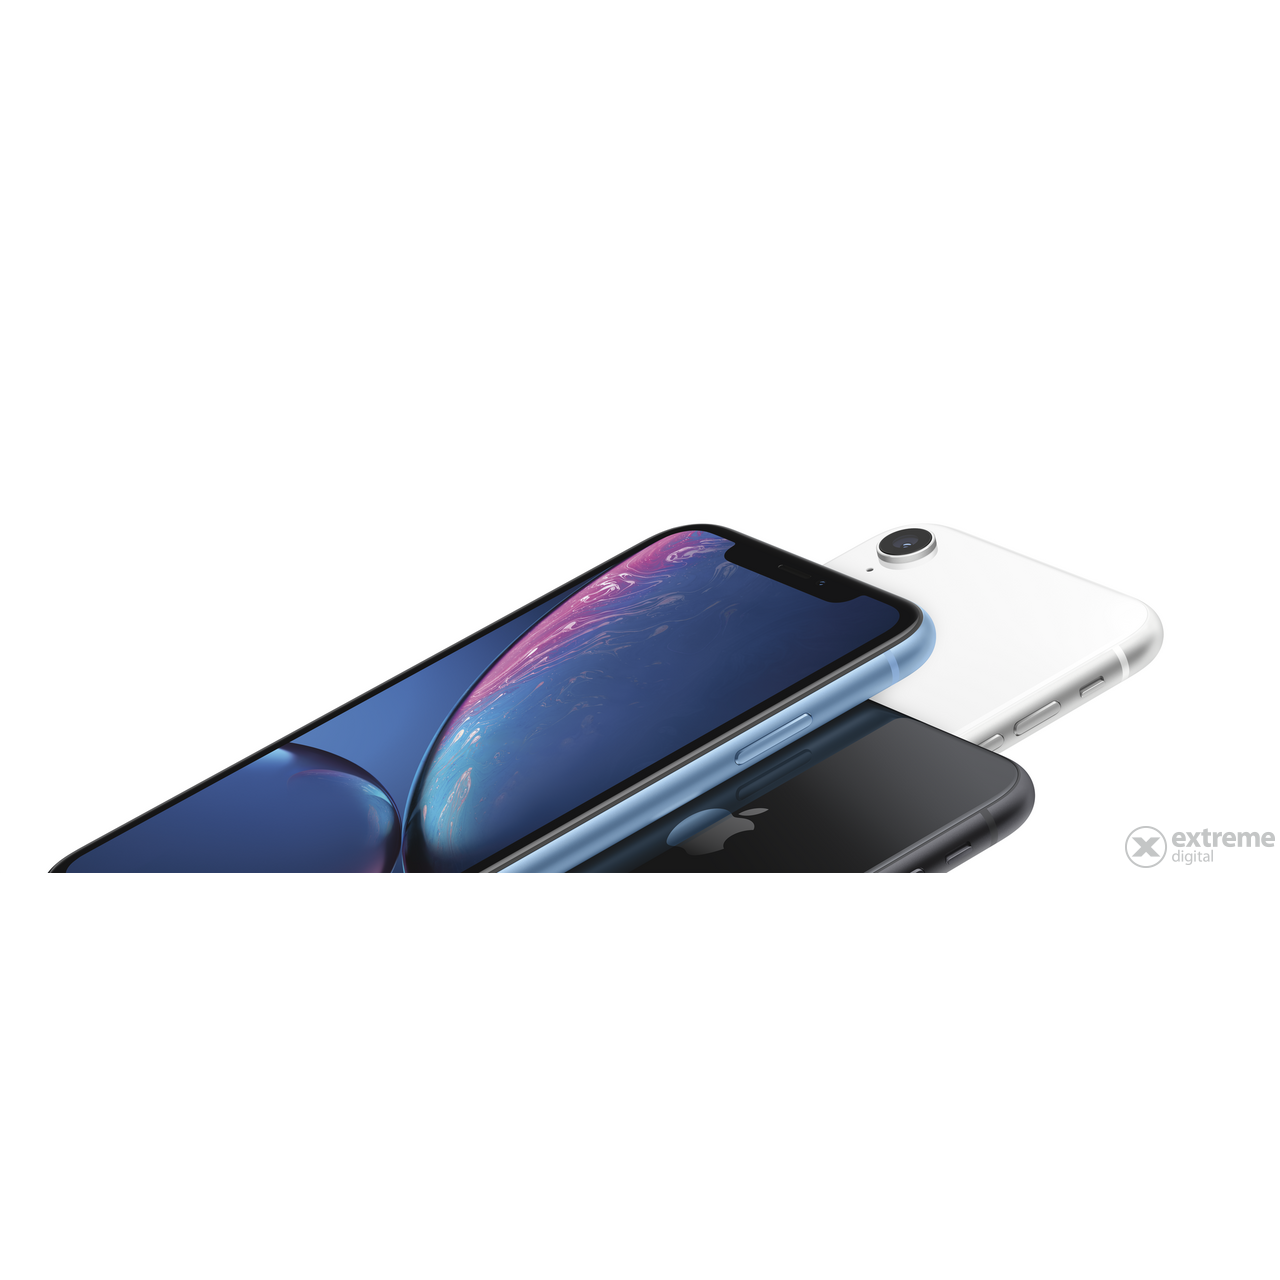 Apple iPhone XR 256GB pametni telefon, bijeli